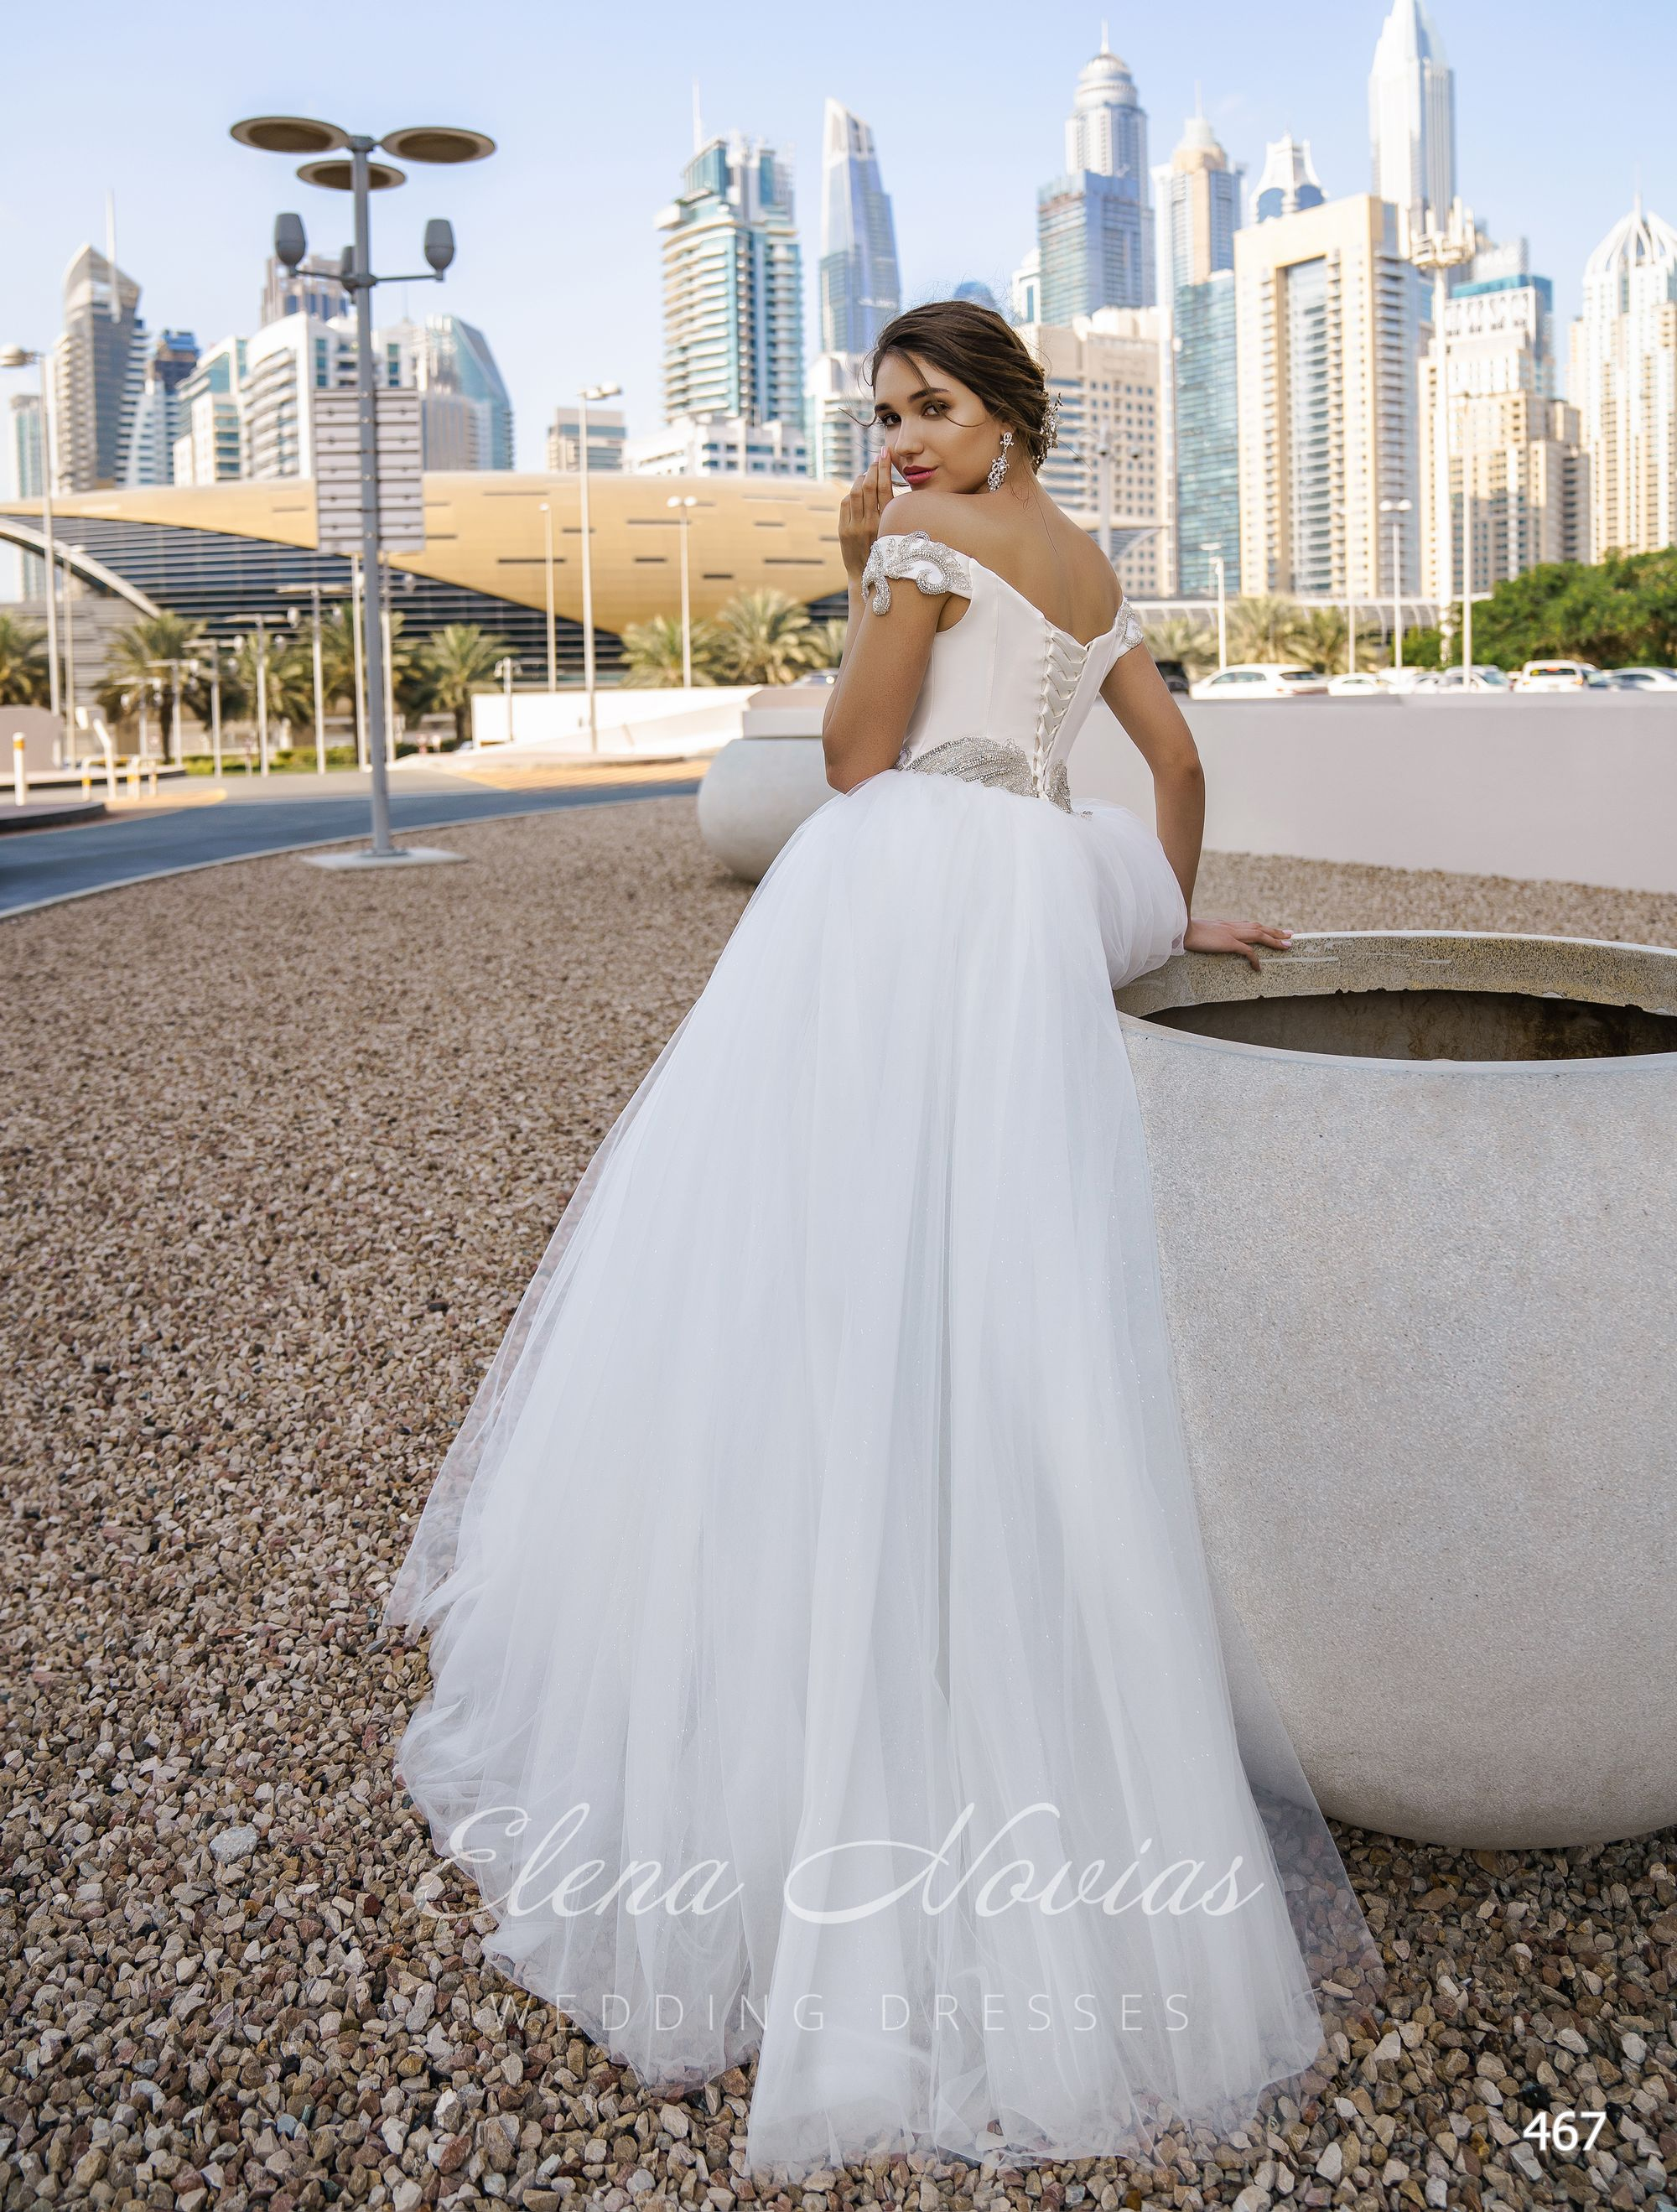 Wedding dresses 467 2